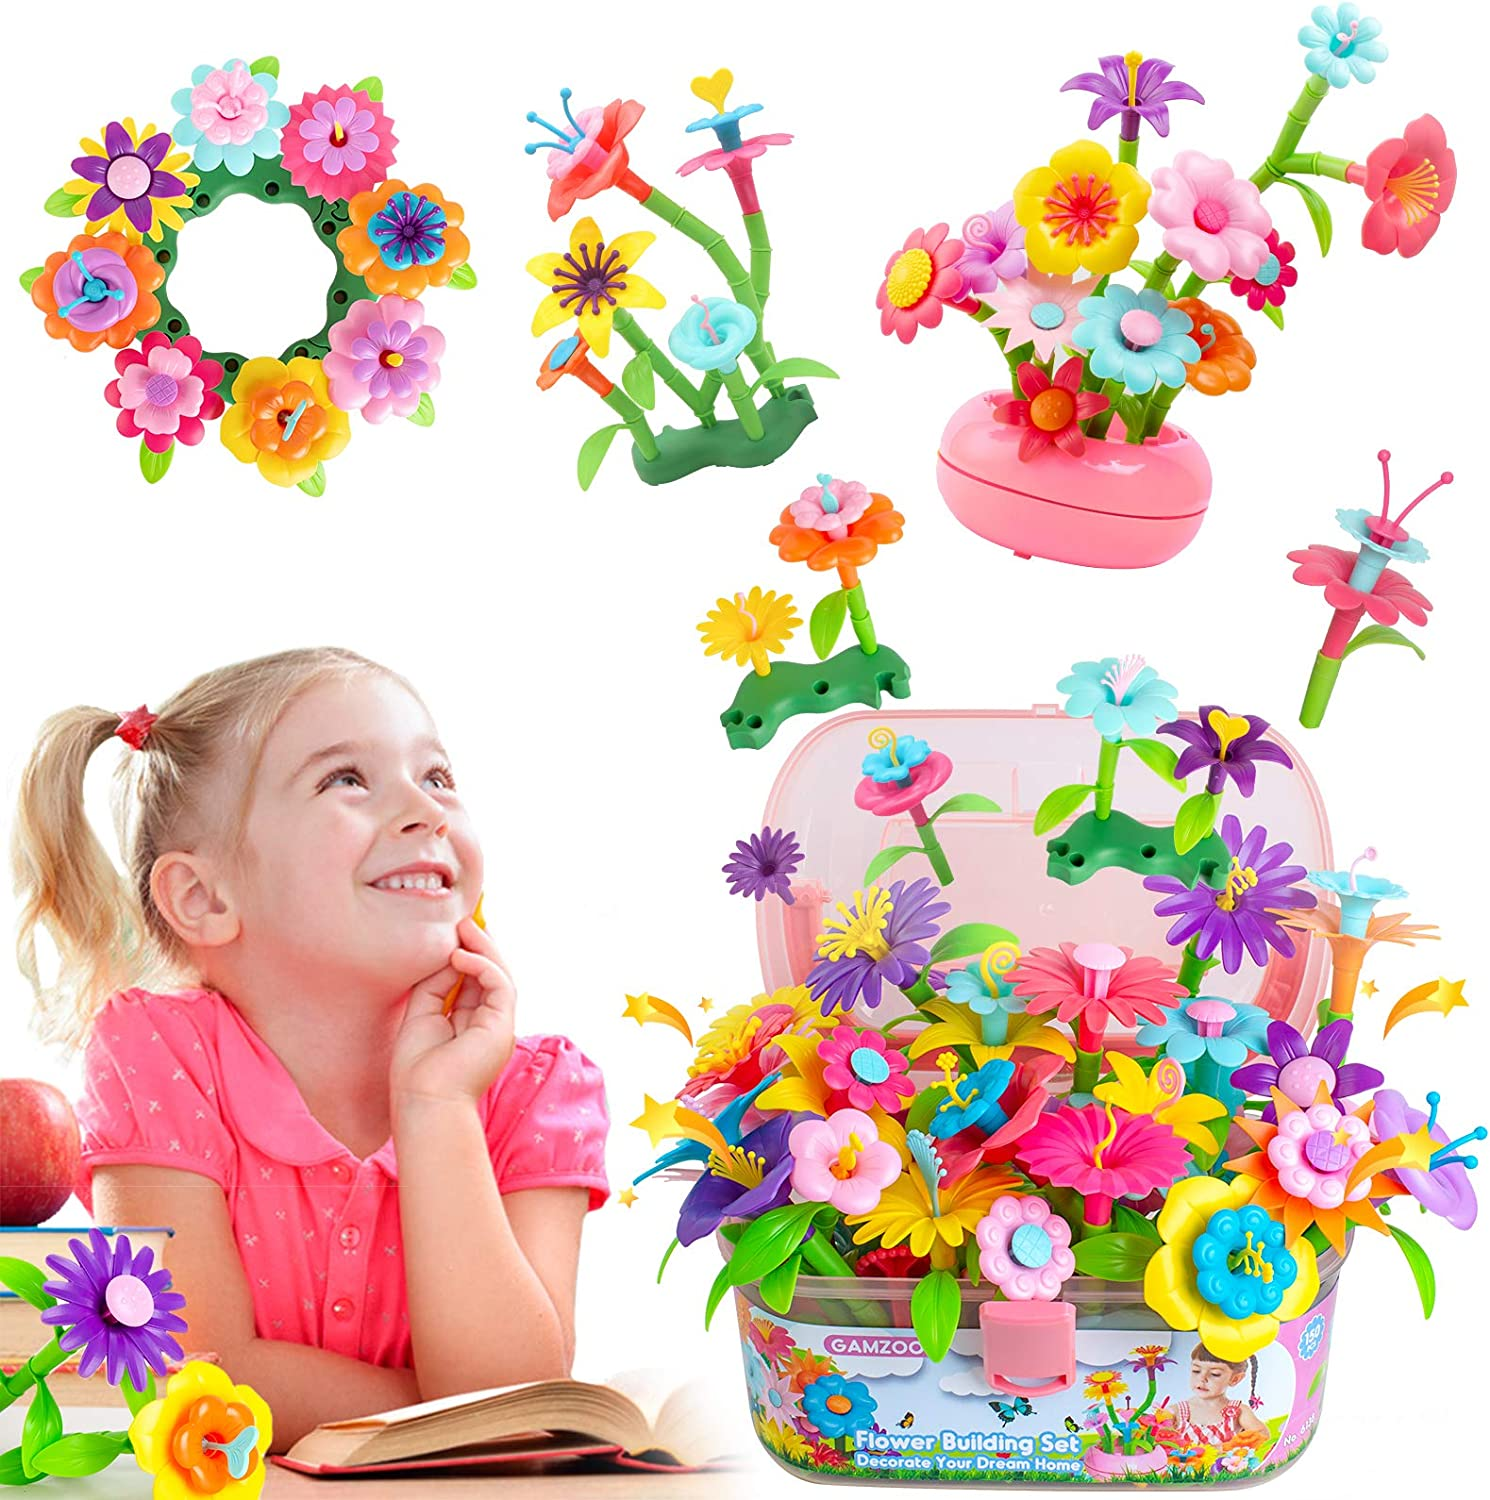 GAMZOO Flower Garden Building Toys - Birthday Gift for 3-6 Year Old Girls - Fun Blooming!(150pcs)